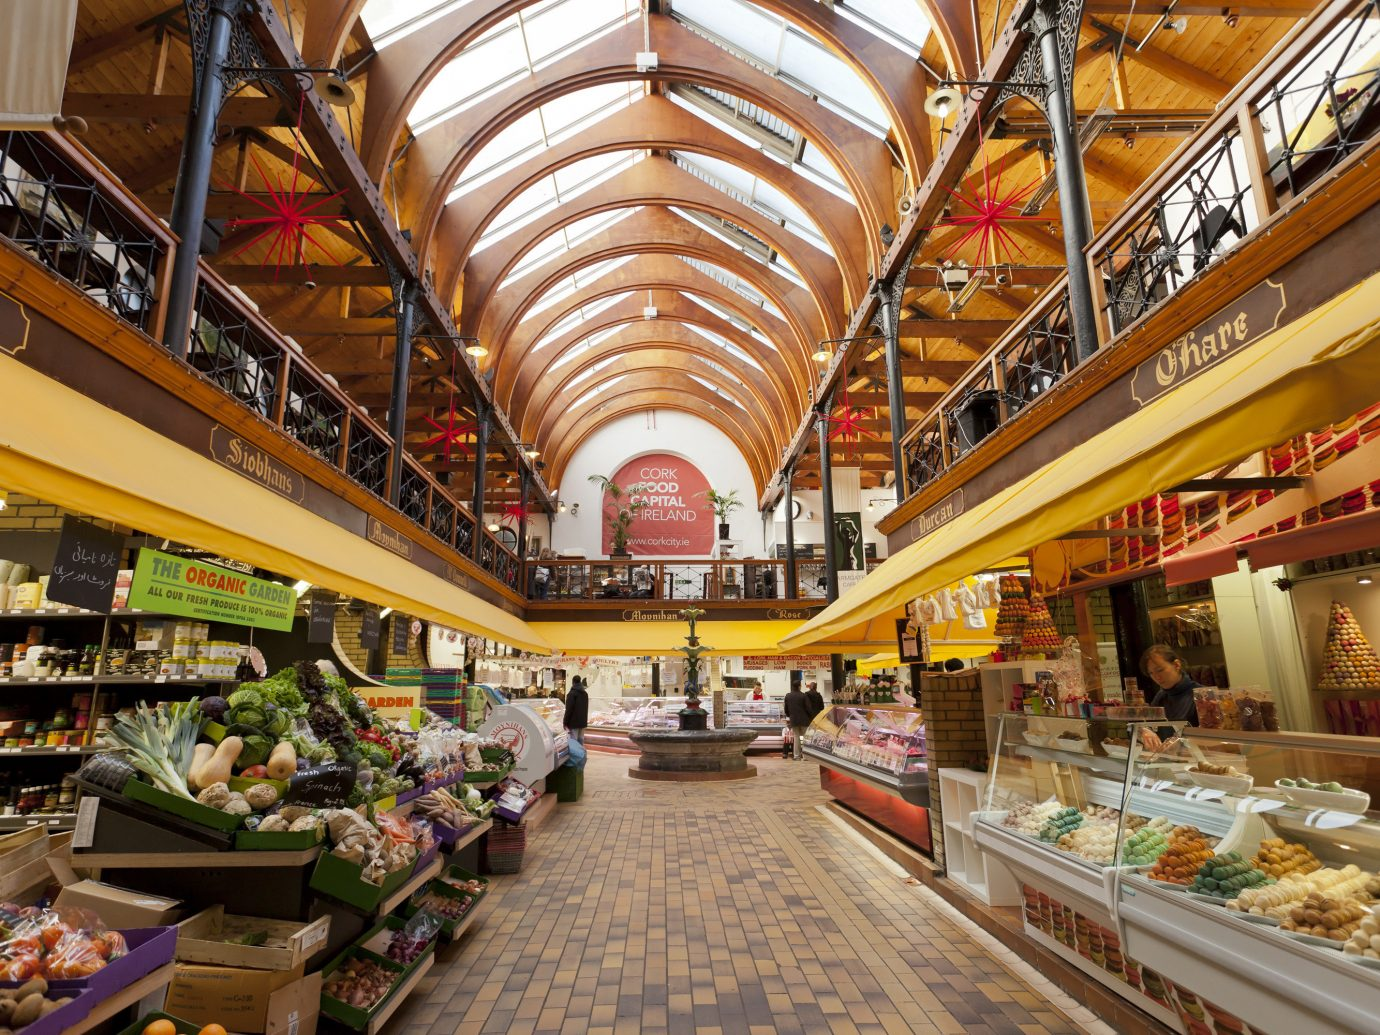 Dublin Ireland Trip Ideas indoor marketplace grocery store supermarket market retail scene bazaar whole food shopping mall pastry convenience food store grocer City greengrocer shopping aisle displayed